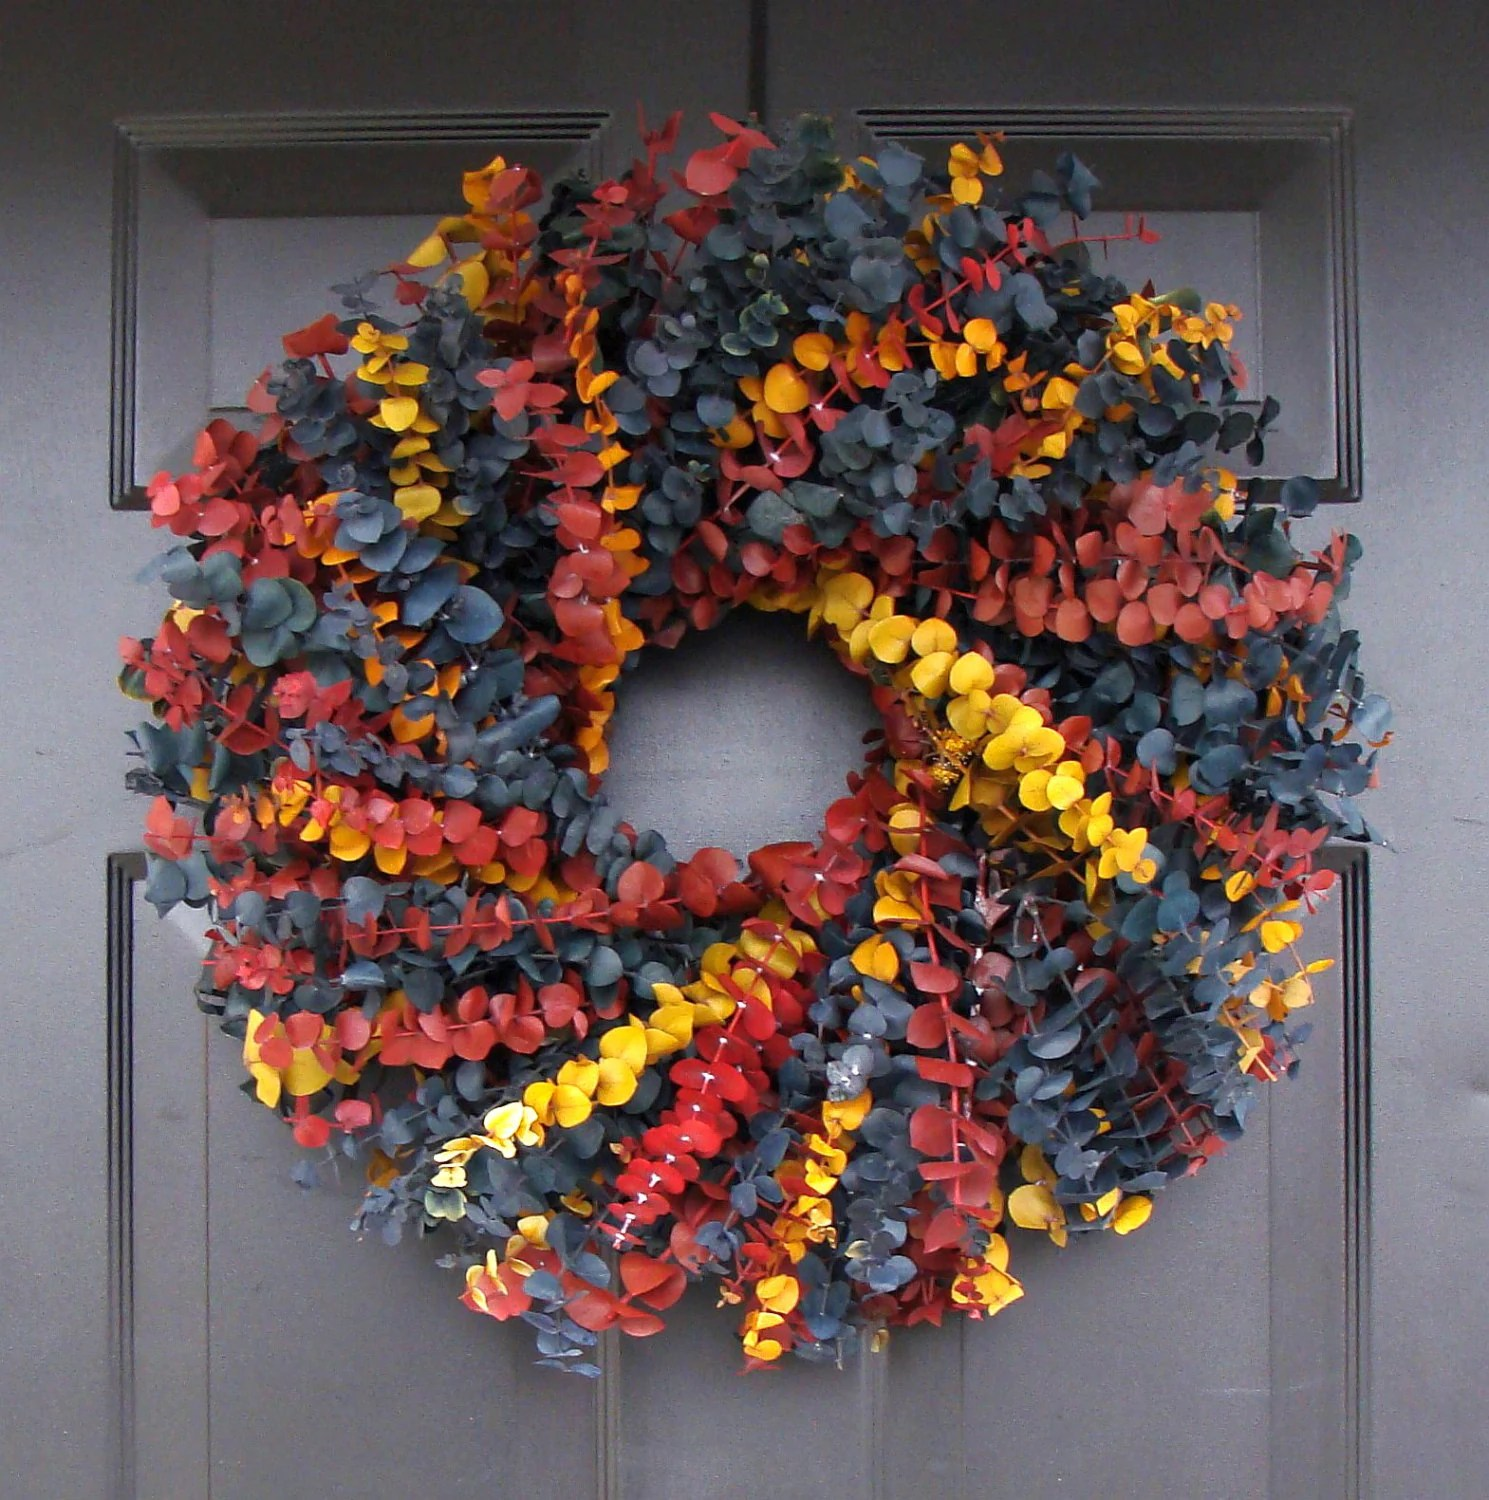 Year Round Wreath- Dried Floral Wreath- Floral Arrangement ... on Decorative Wall Sconces For Flowers Arrangements id=89813